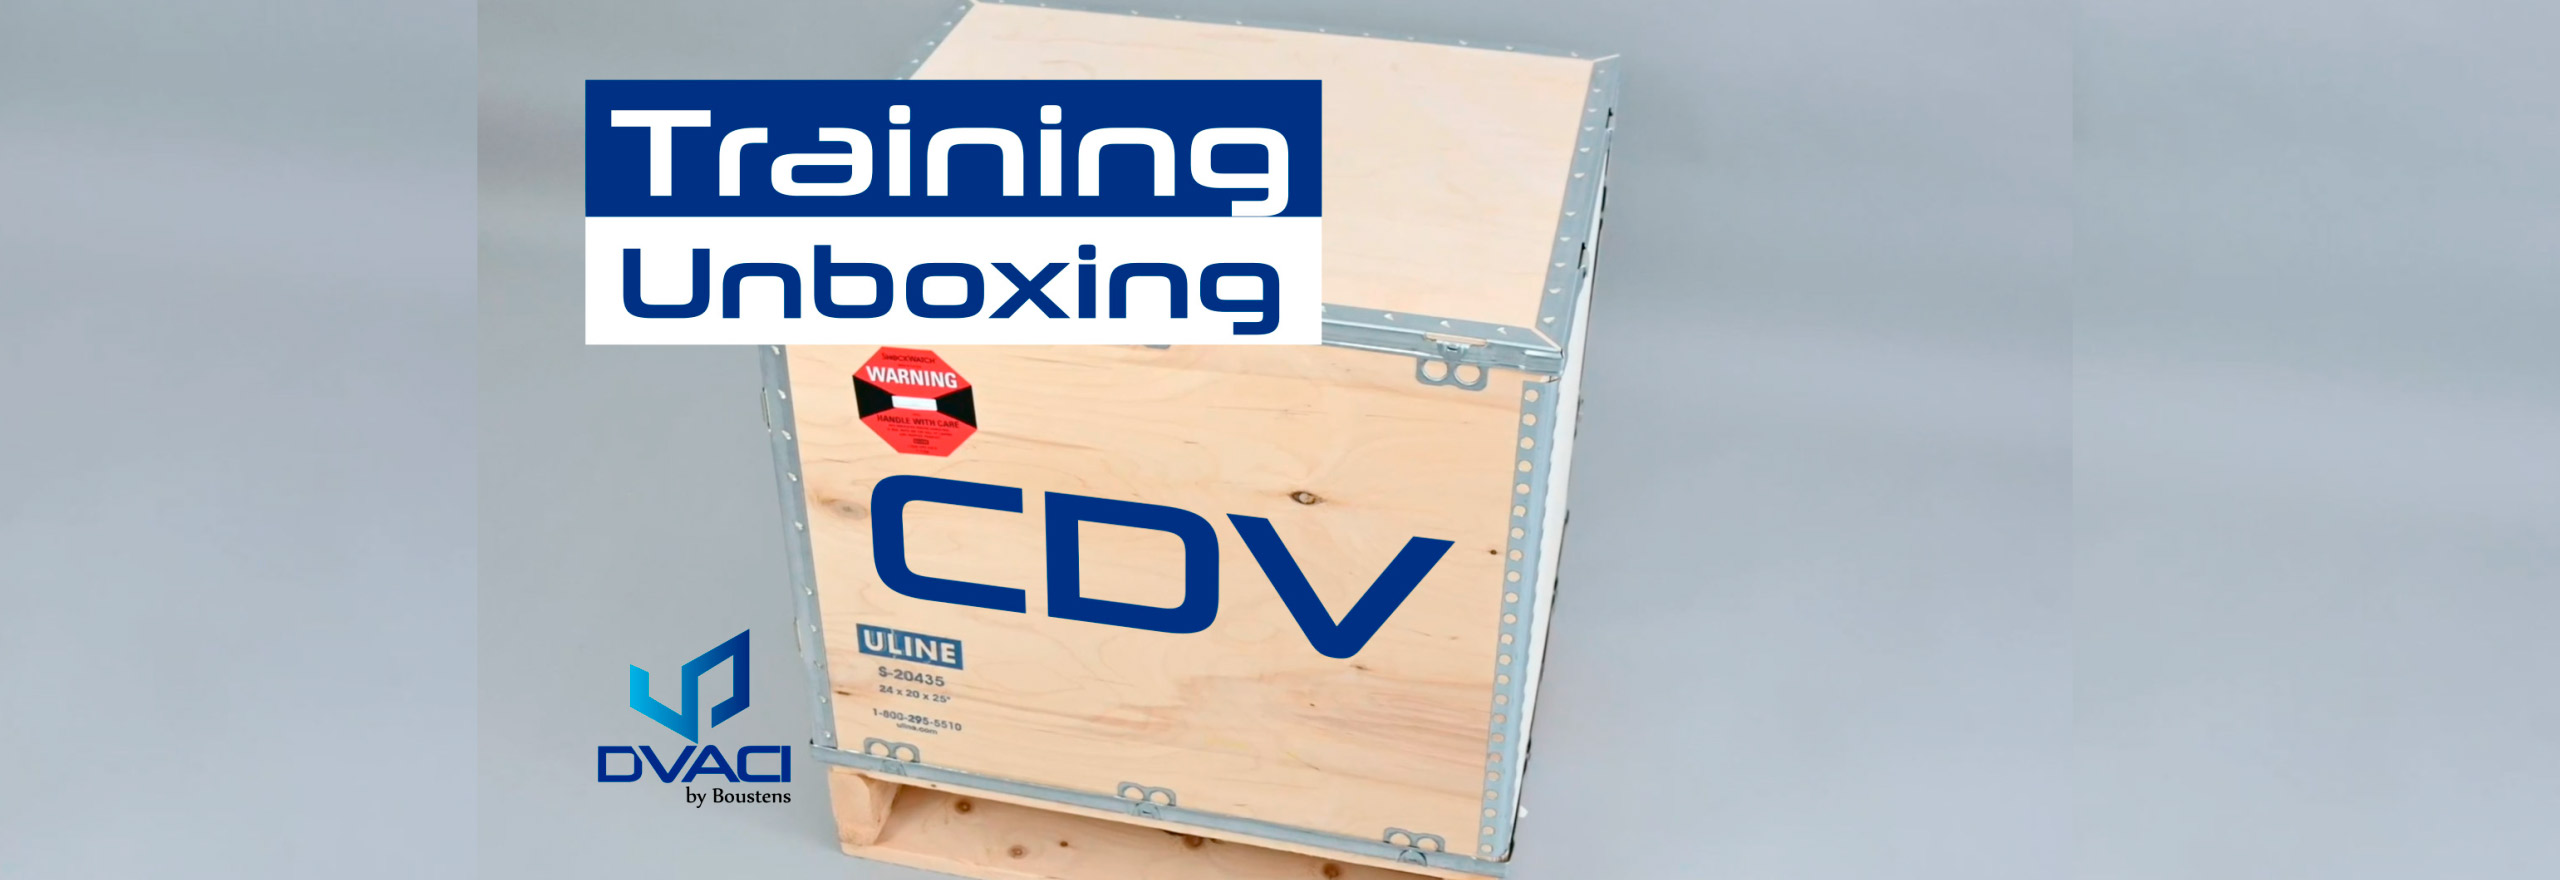 Vacuum Chamber CDV Unboxing training video